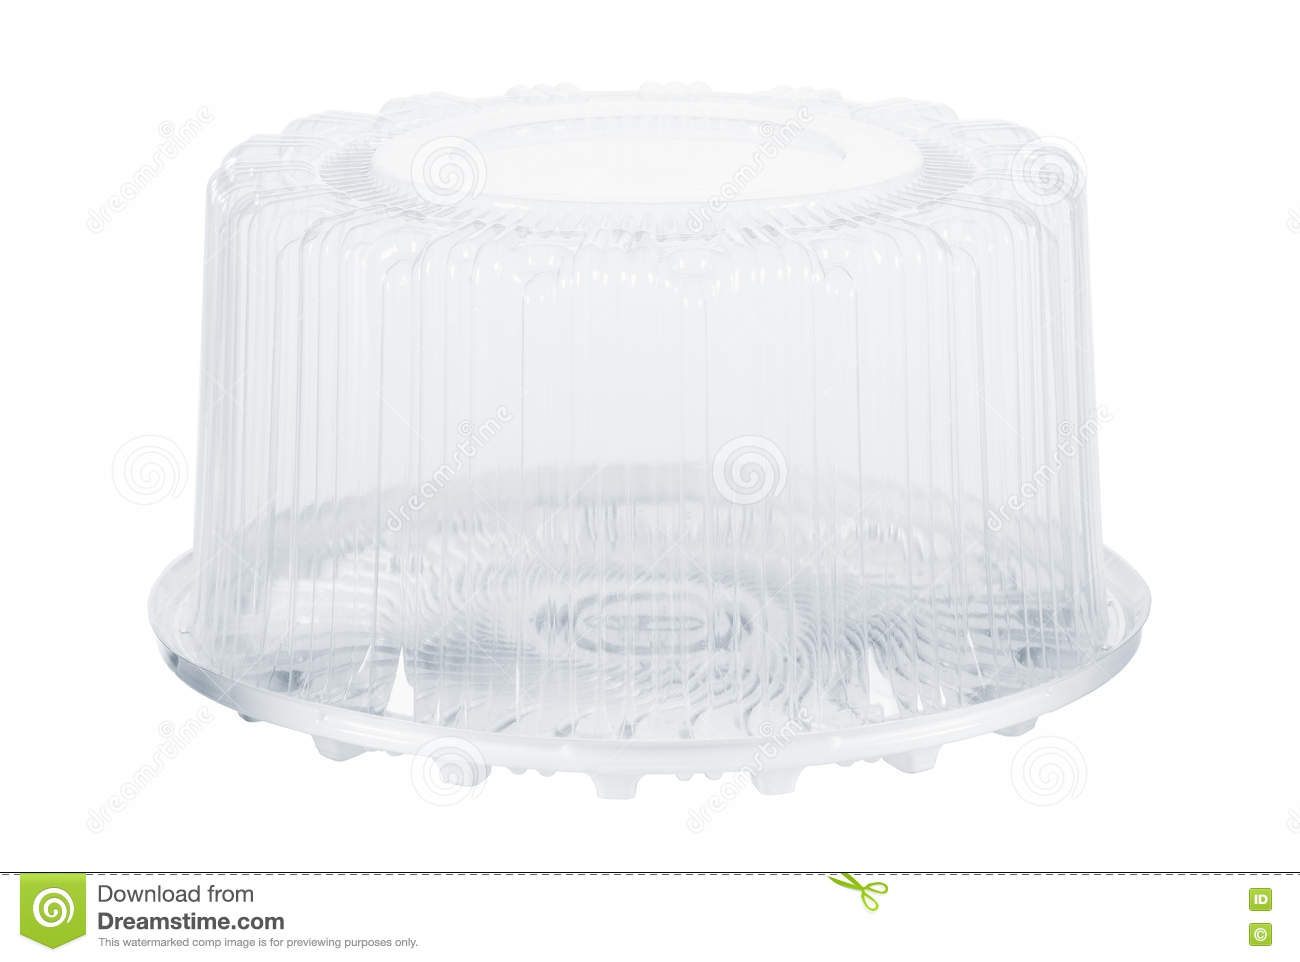 Plastic Cake Storage Container isolated on white  sc 1 st  Dreamstime.com & Plastic Cake Storage Container Isolated On White Stock Photo - Image ...